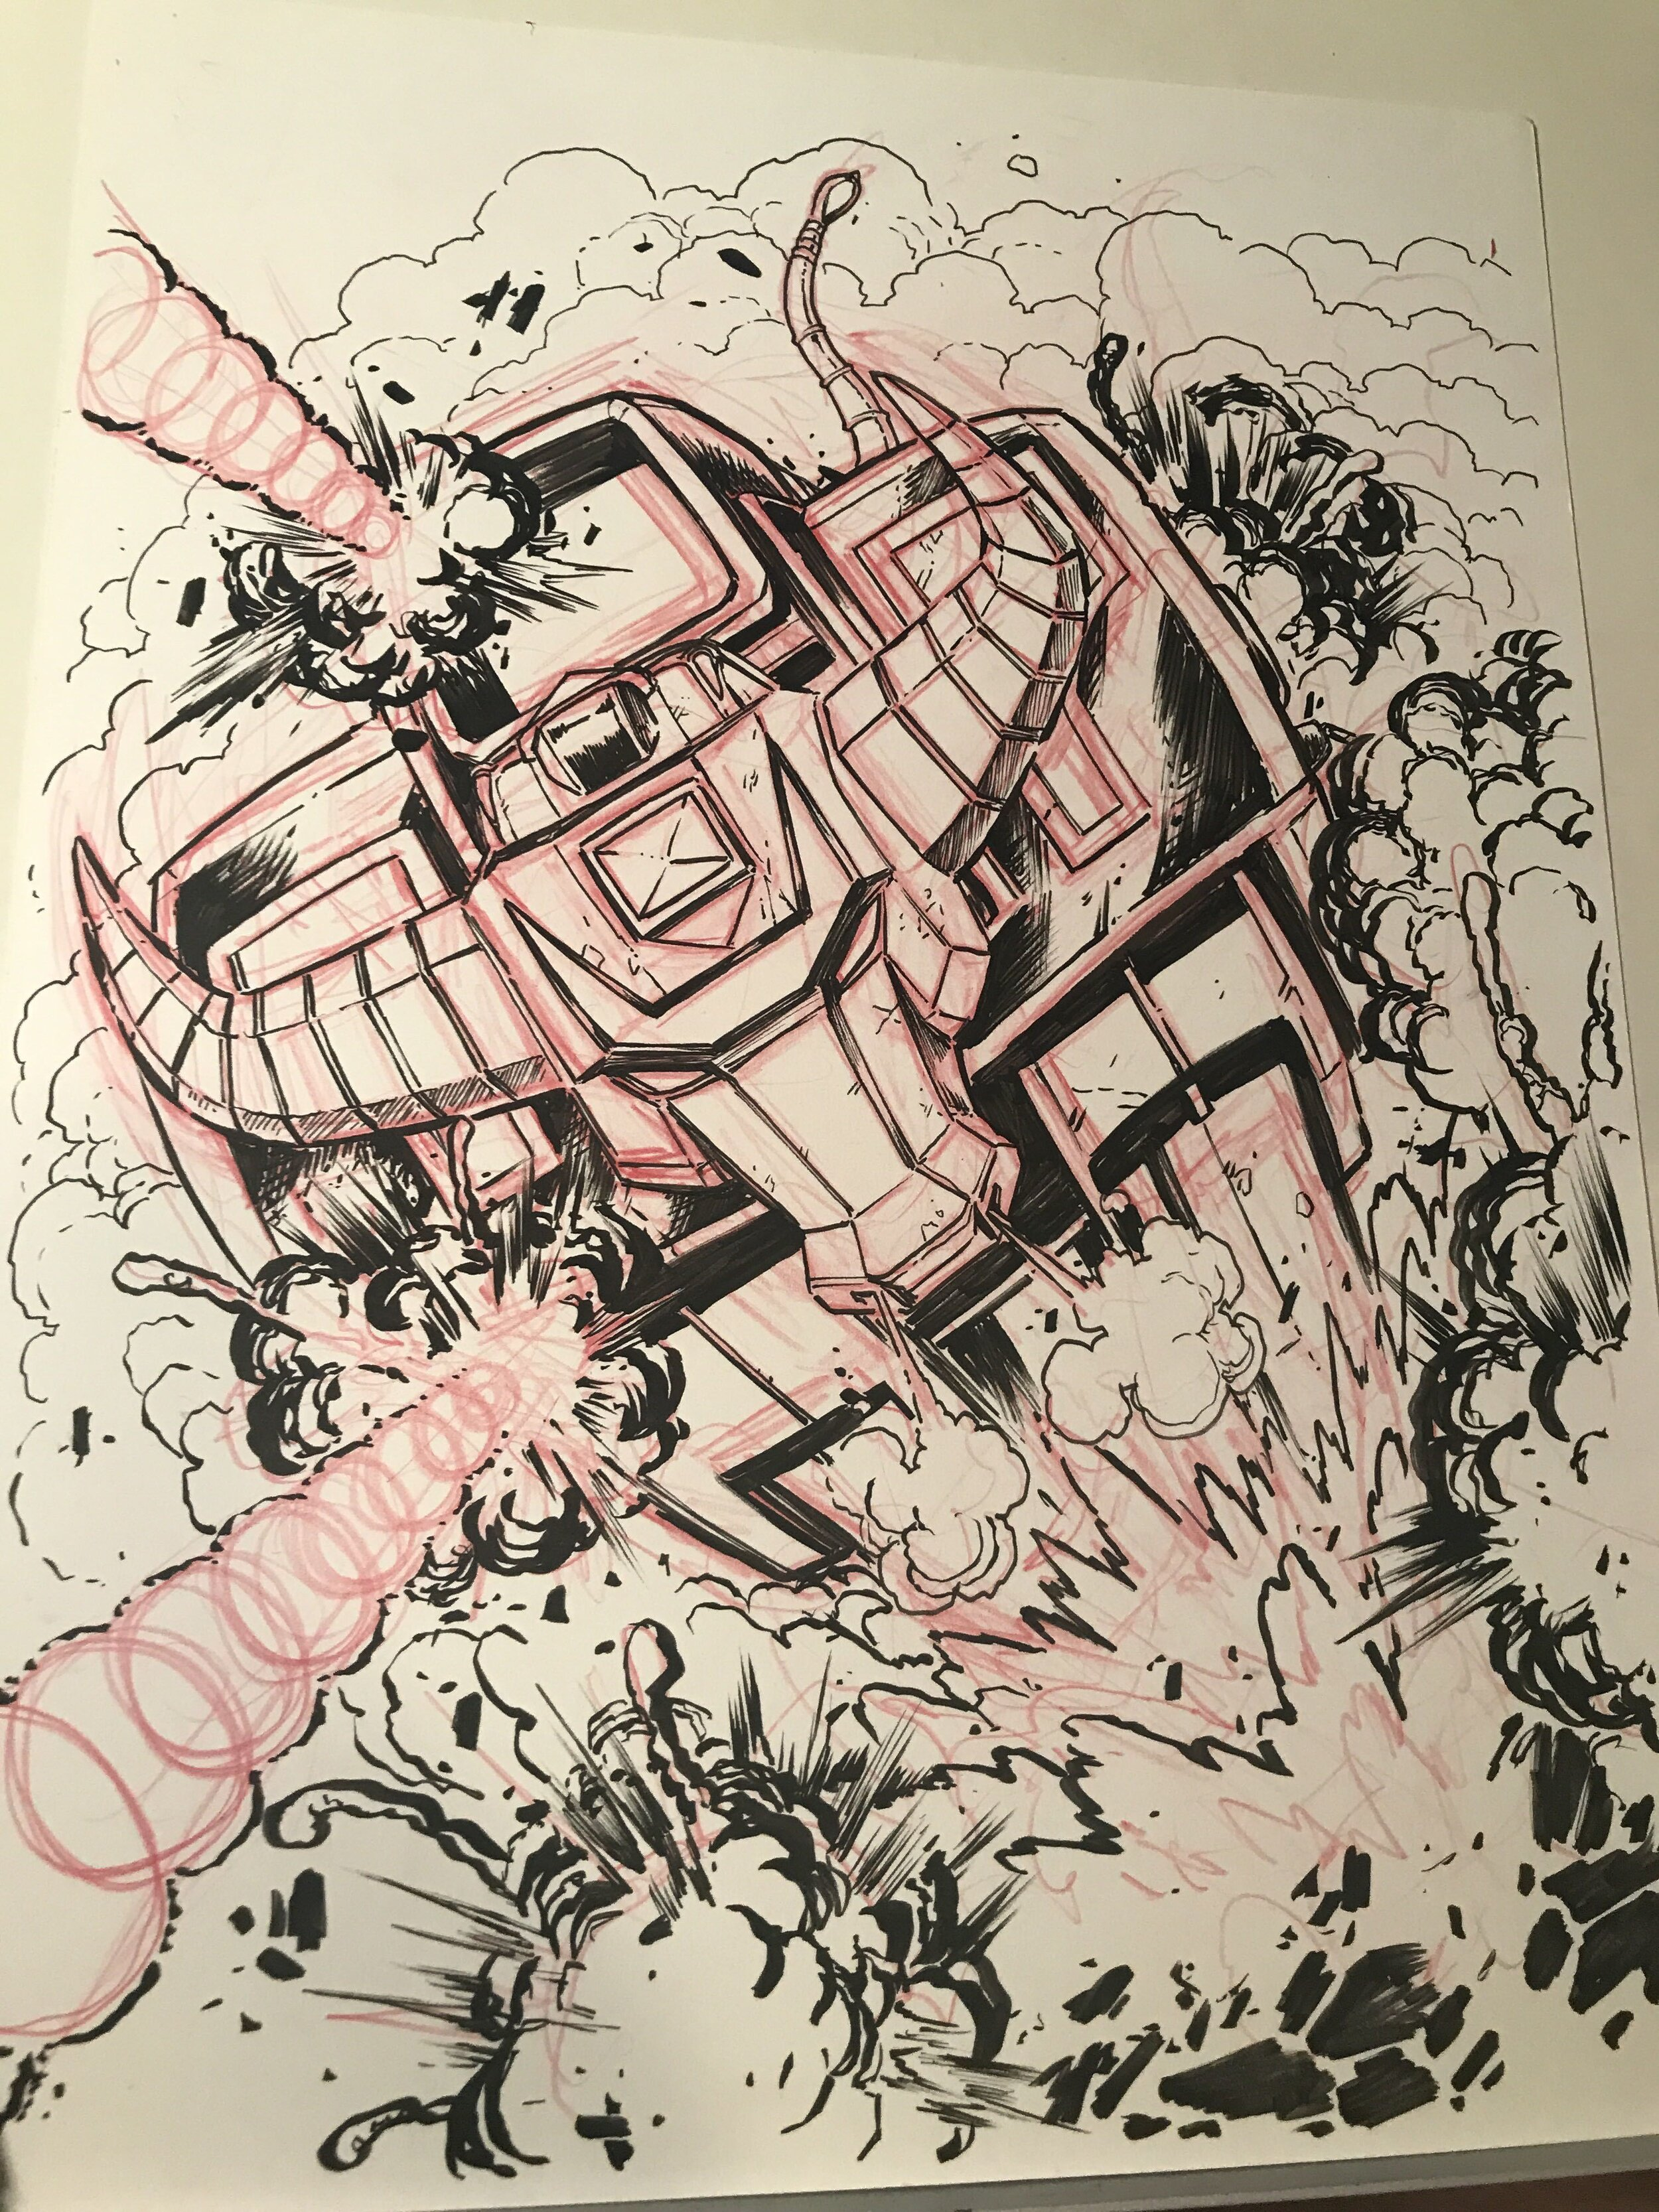 A ZeoZord sketched by Matt Frank